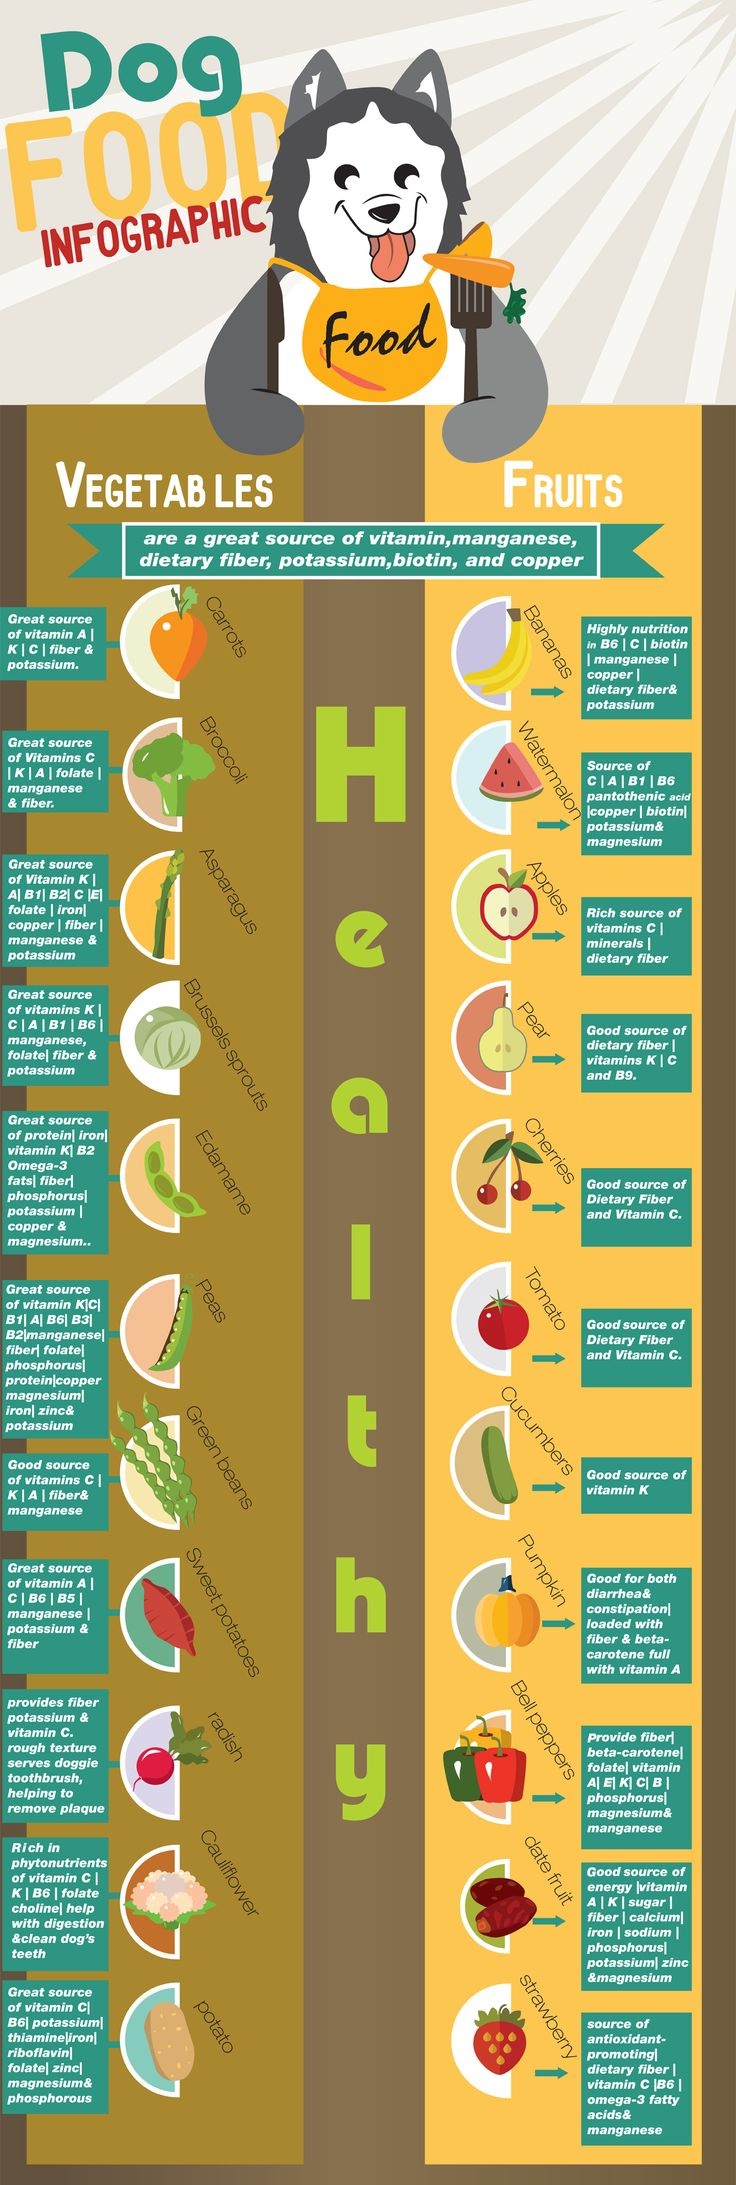 Dog food Infographic, Most people don't know but dogs are omnivores and not carnivores. I'm a huge dog lover so I took the time and made this extremely detailed and extend Infographic on the topic that shows which fruit and vegetable is good for your dog and  which are toxic. Hopefully this will help dog owners around the world every time they open their freeze and think about sharing a veggie as a treat with there furry friend. The rest of the infographic contain food who are toxic to dogs